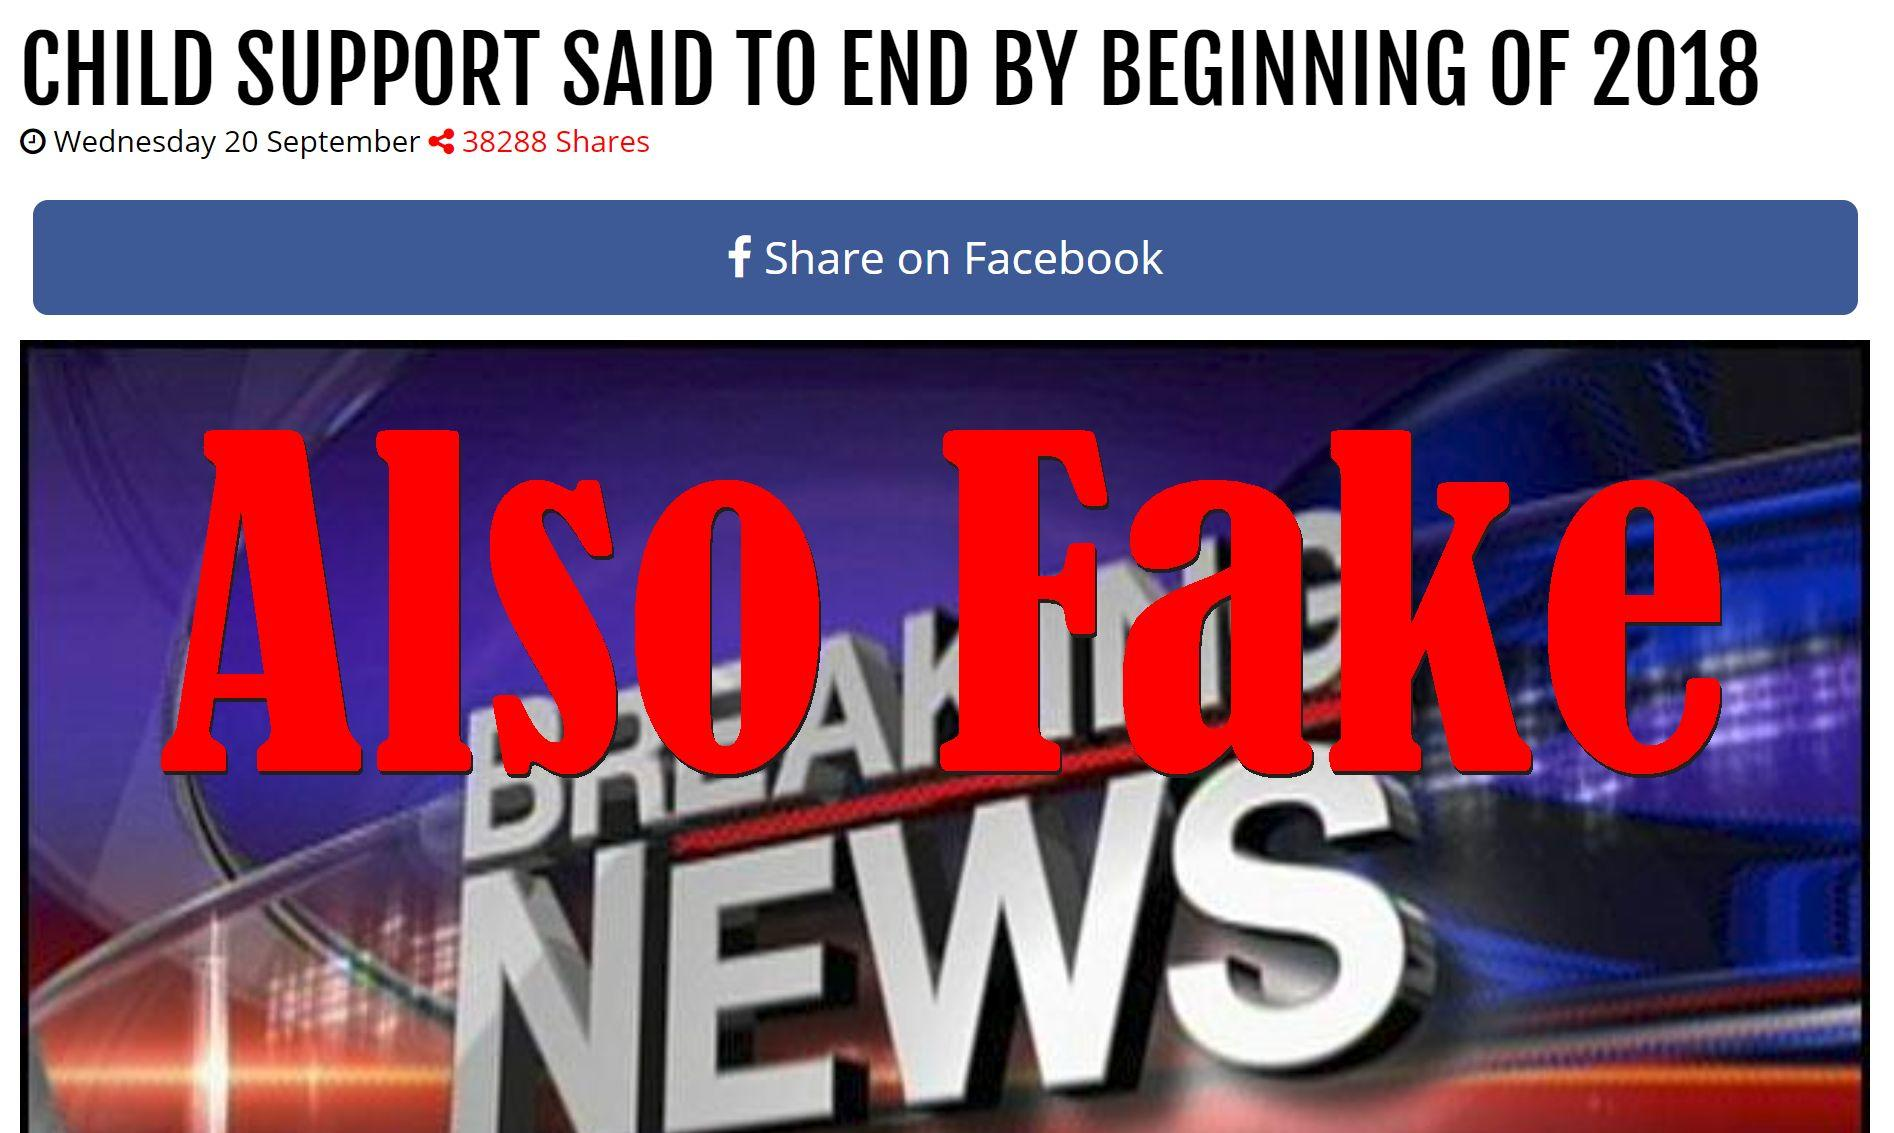 Fake News: Child Support NOT Said To End By Beginning Of 2018